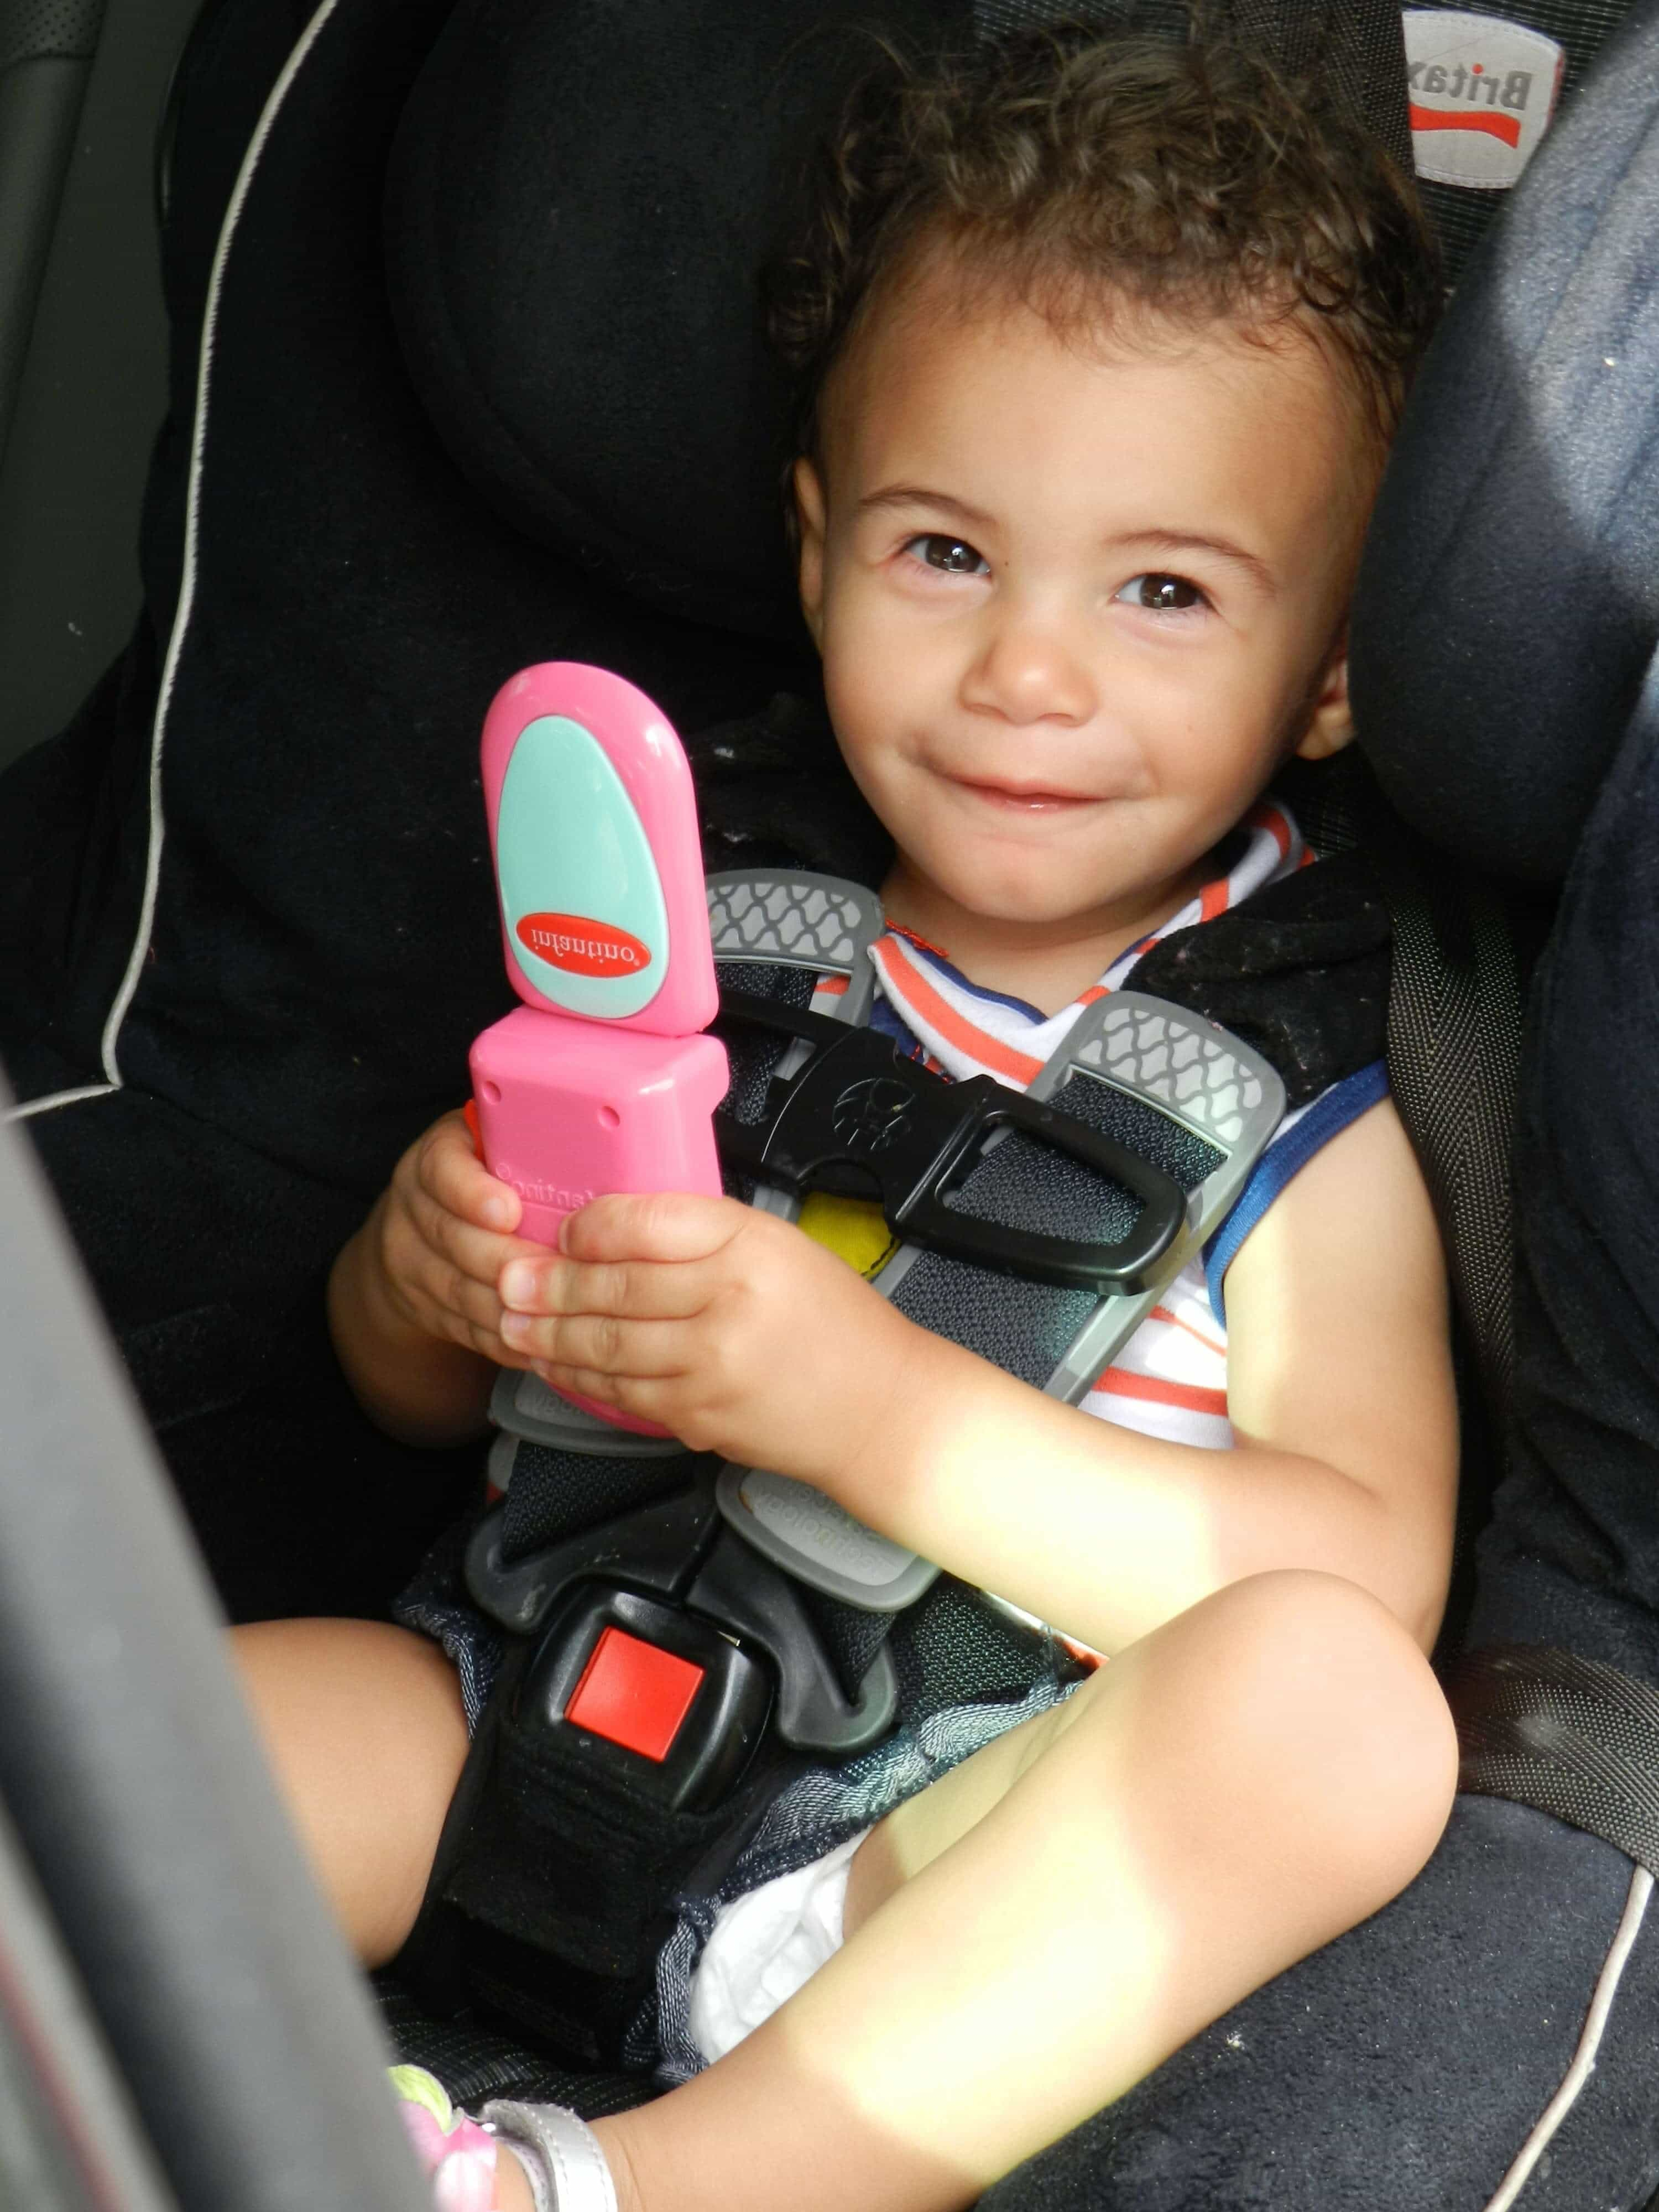 baby in car seat holding a phone